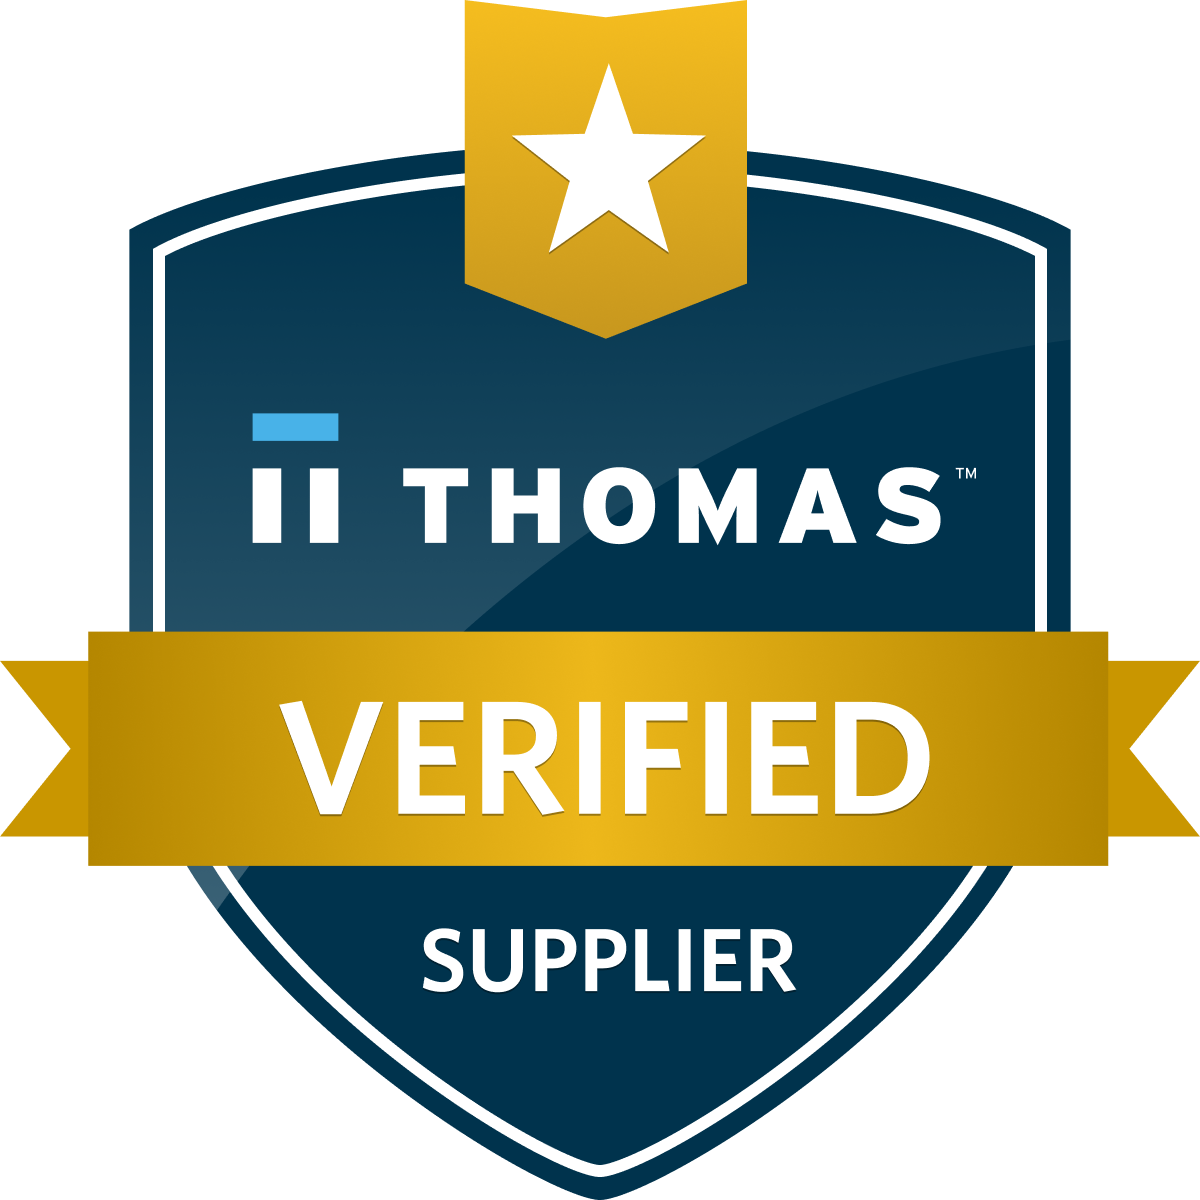 Thomas Verified Supplier Badge